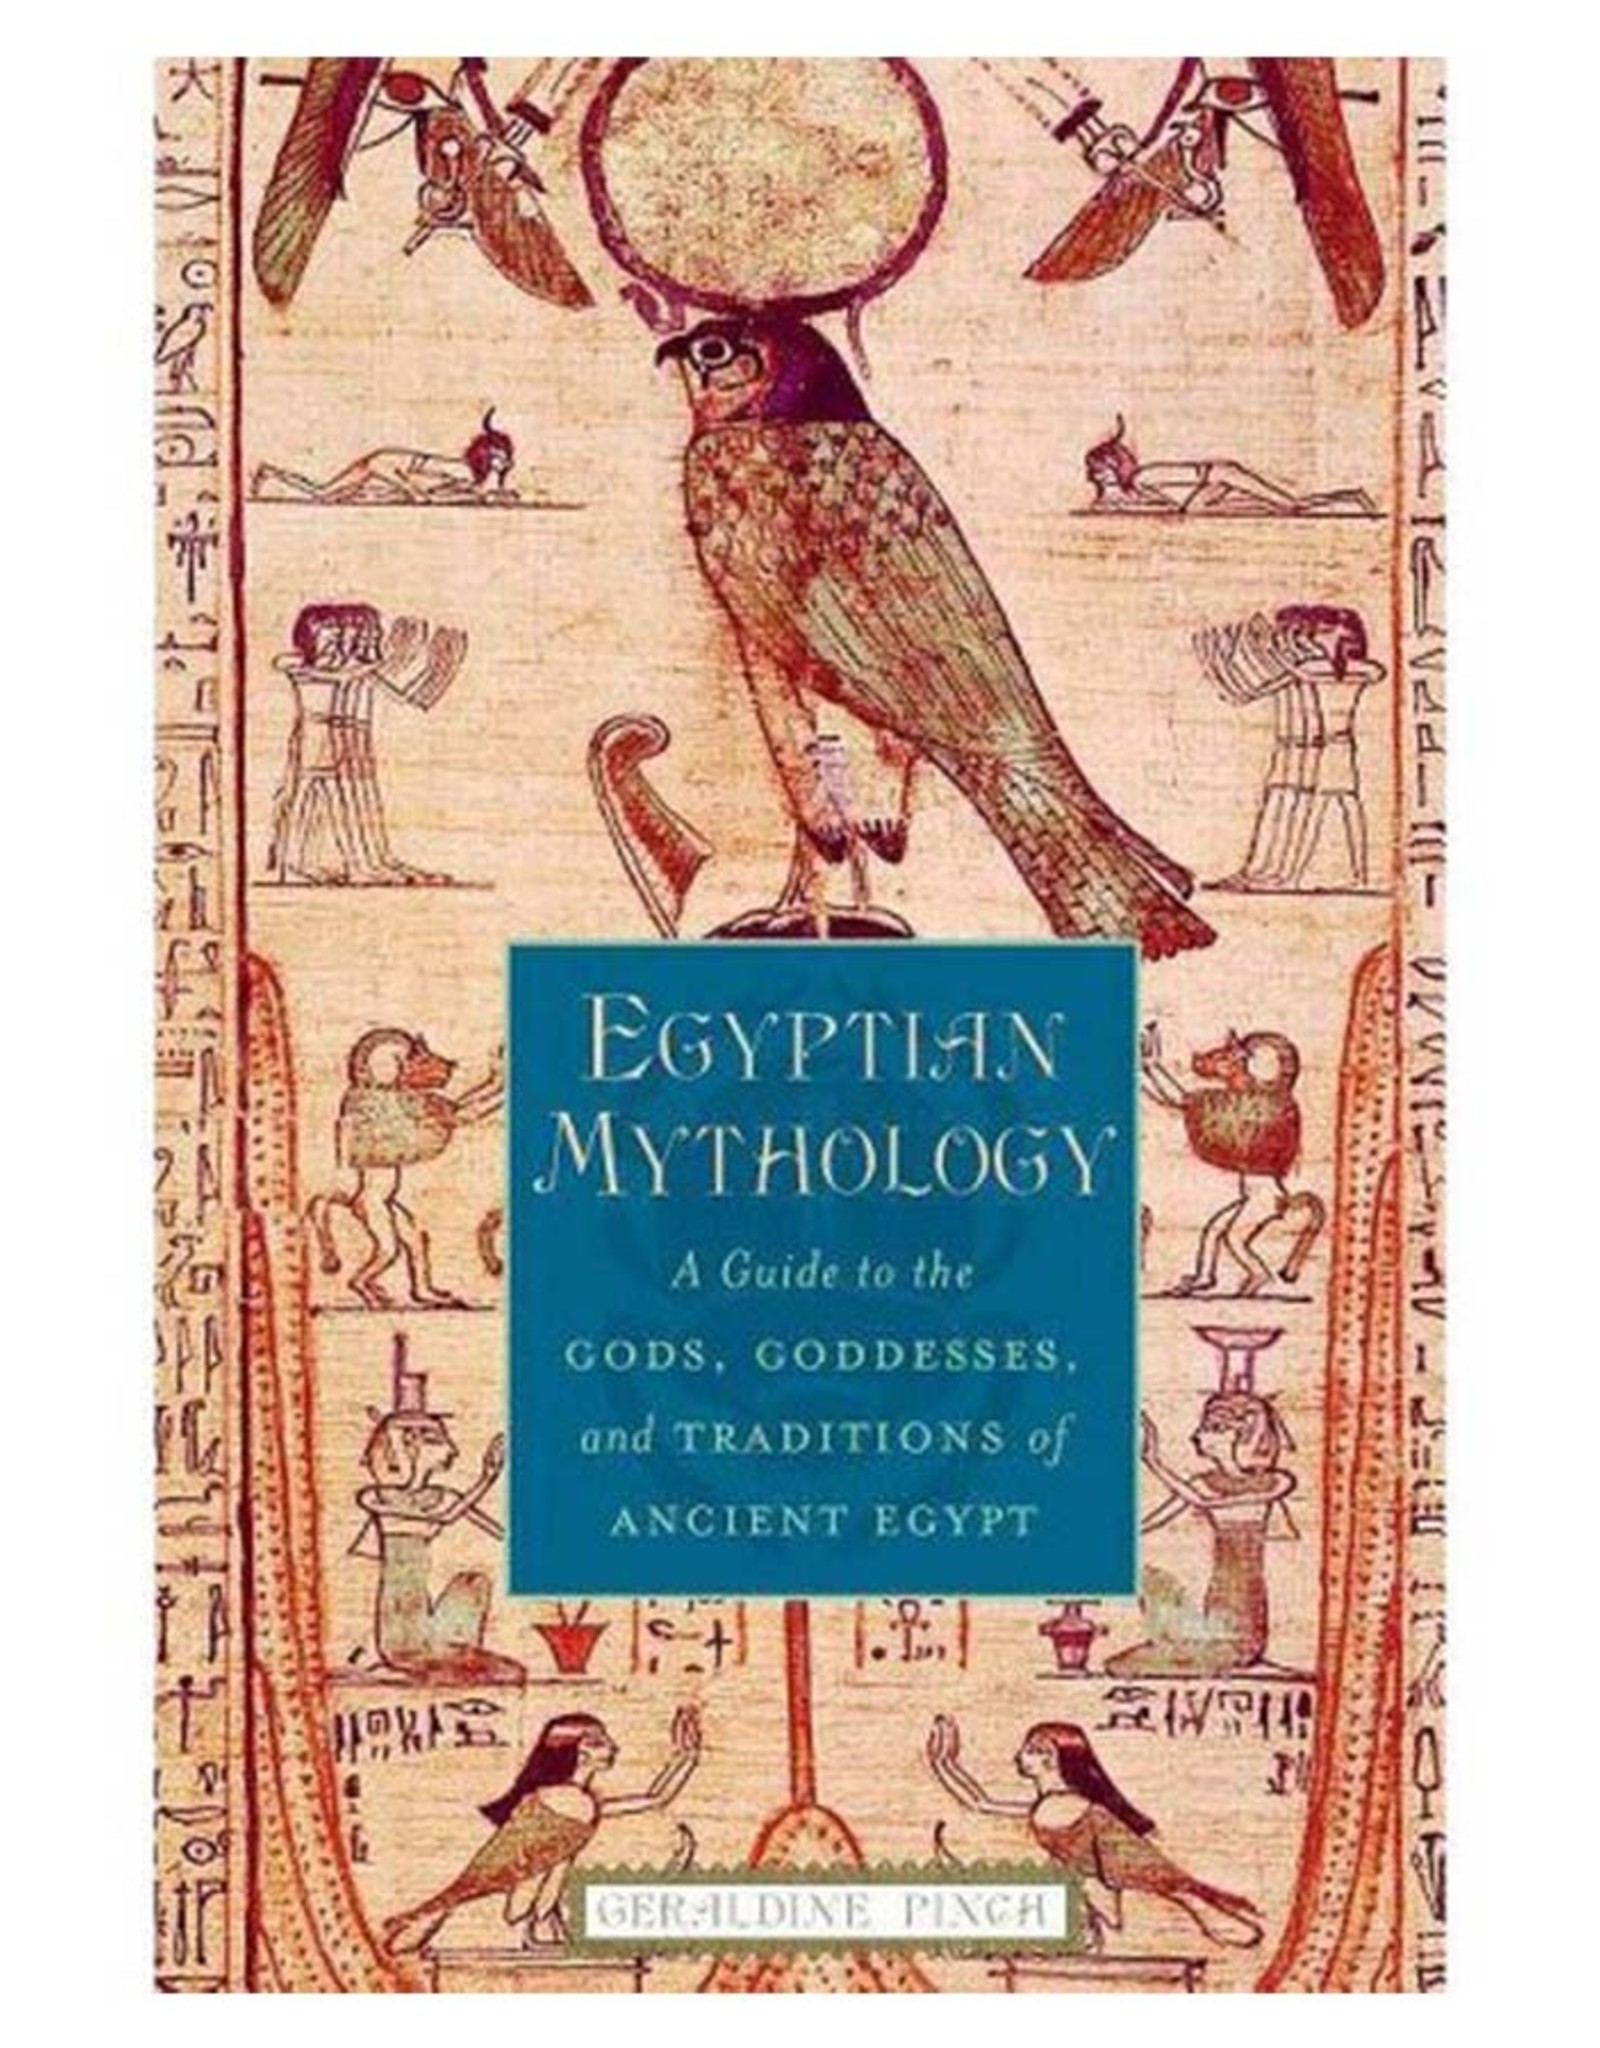 Egyptian Mythology: A Guide to Gods, Goddesses and Traditions of Ancient Egypt